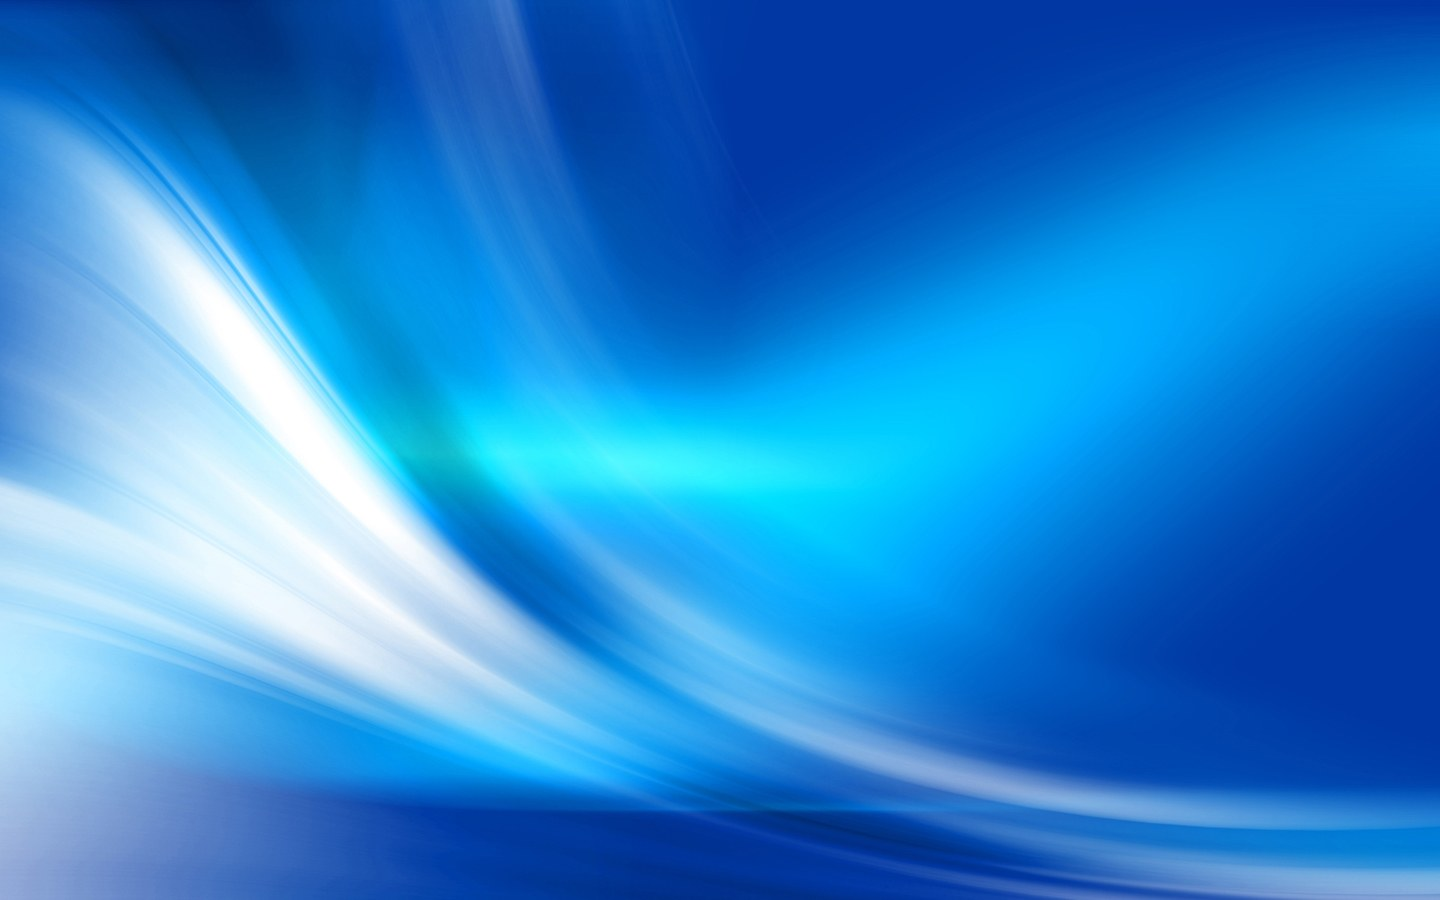 Abstract Light Blue Wallpaper Blue Abstract Light Effect 1440x900